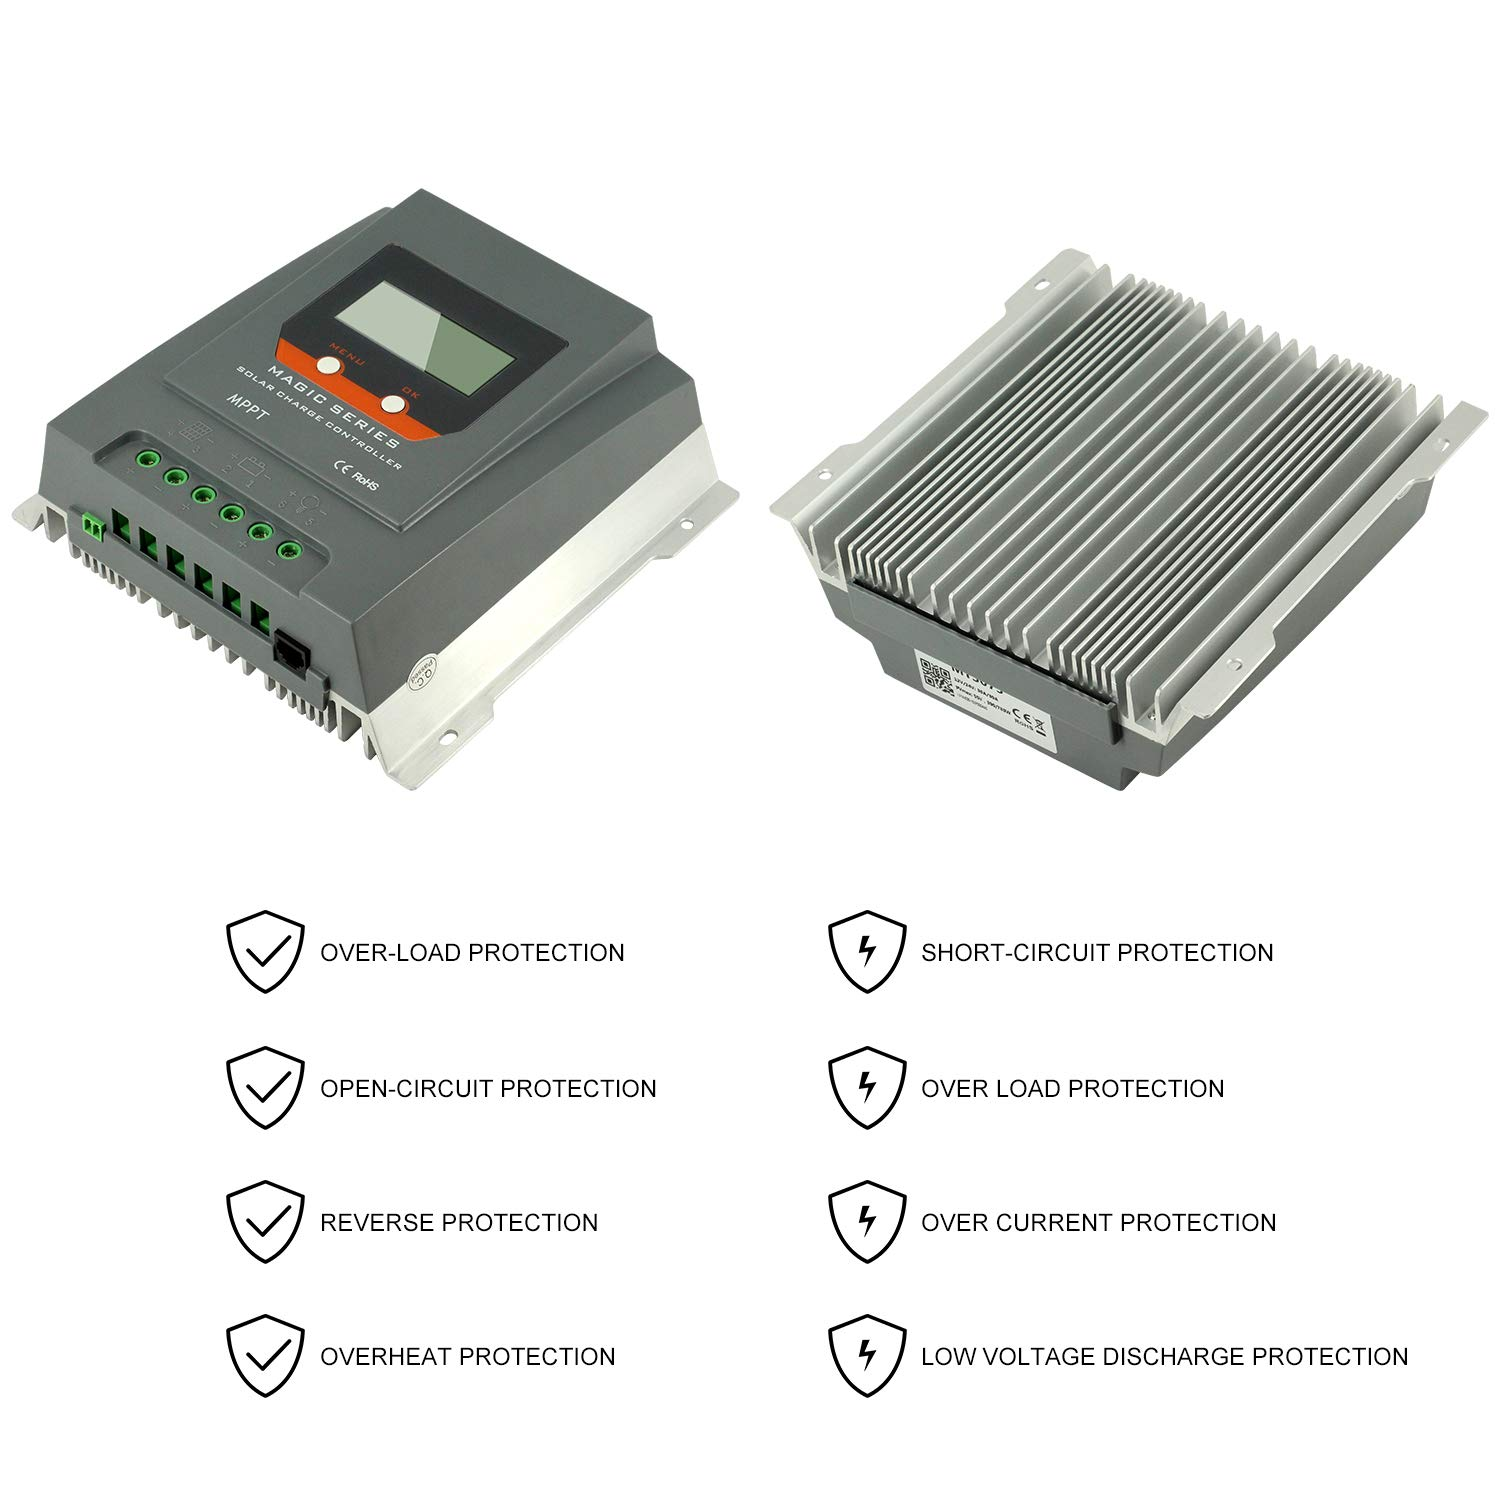 Powmr Mppt Charge Controller 30amp Negative Ground Battery Charger Circuit Besides Solar Panel 24v 780w 12v 390w Weatherproof For Agm Flooded